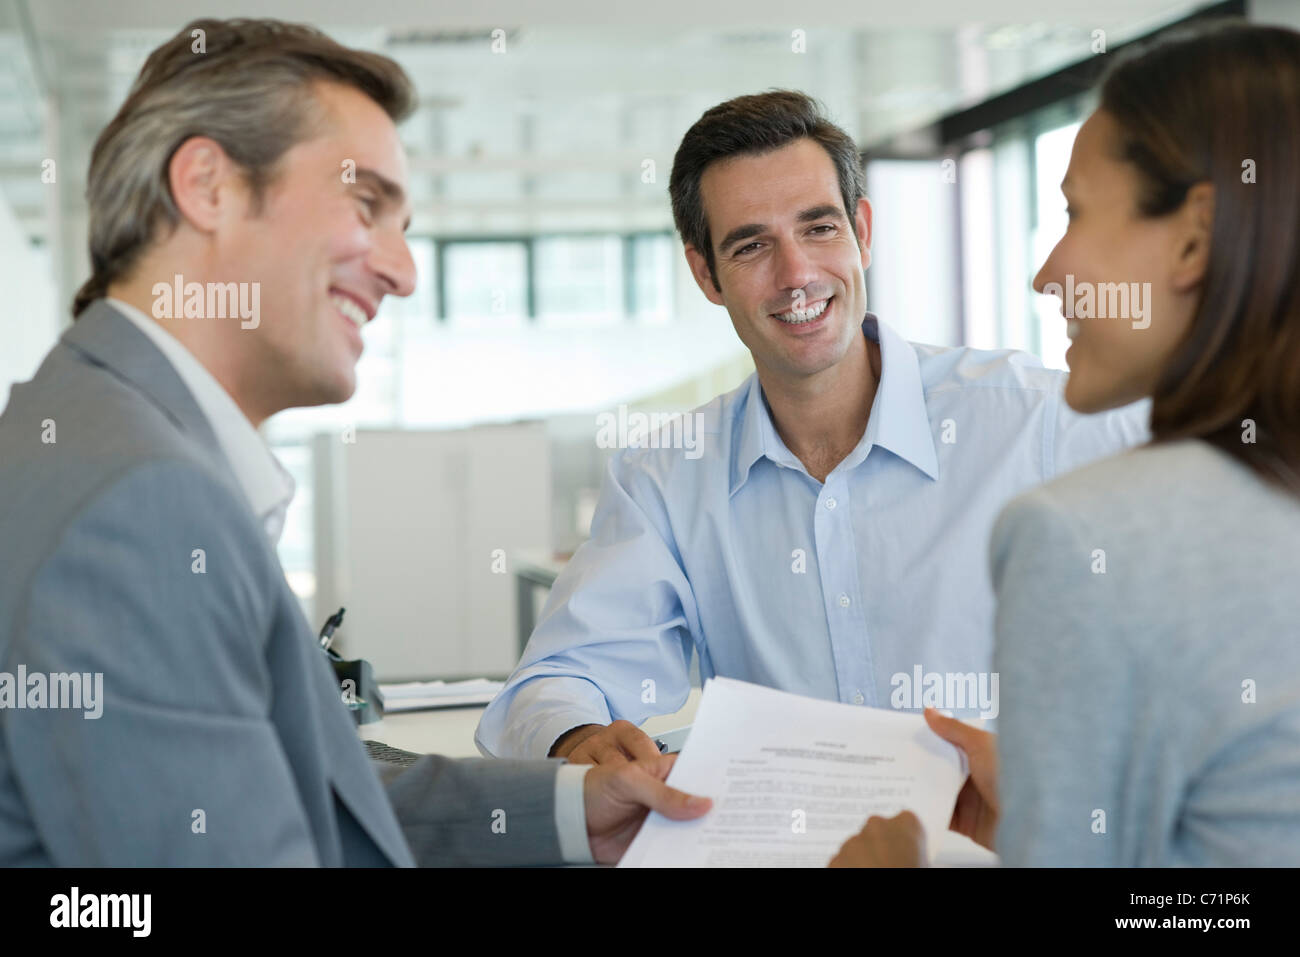 Smiling couple discussing contract with adviser - Stock Image